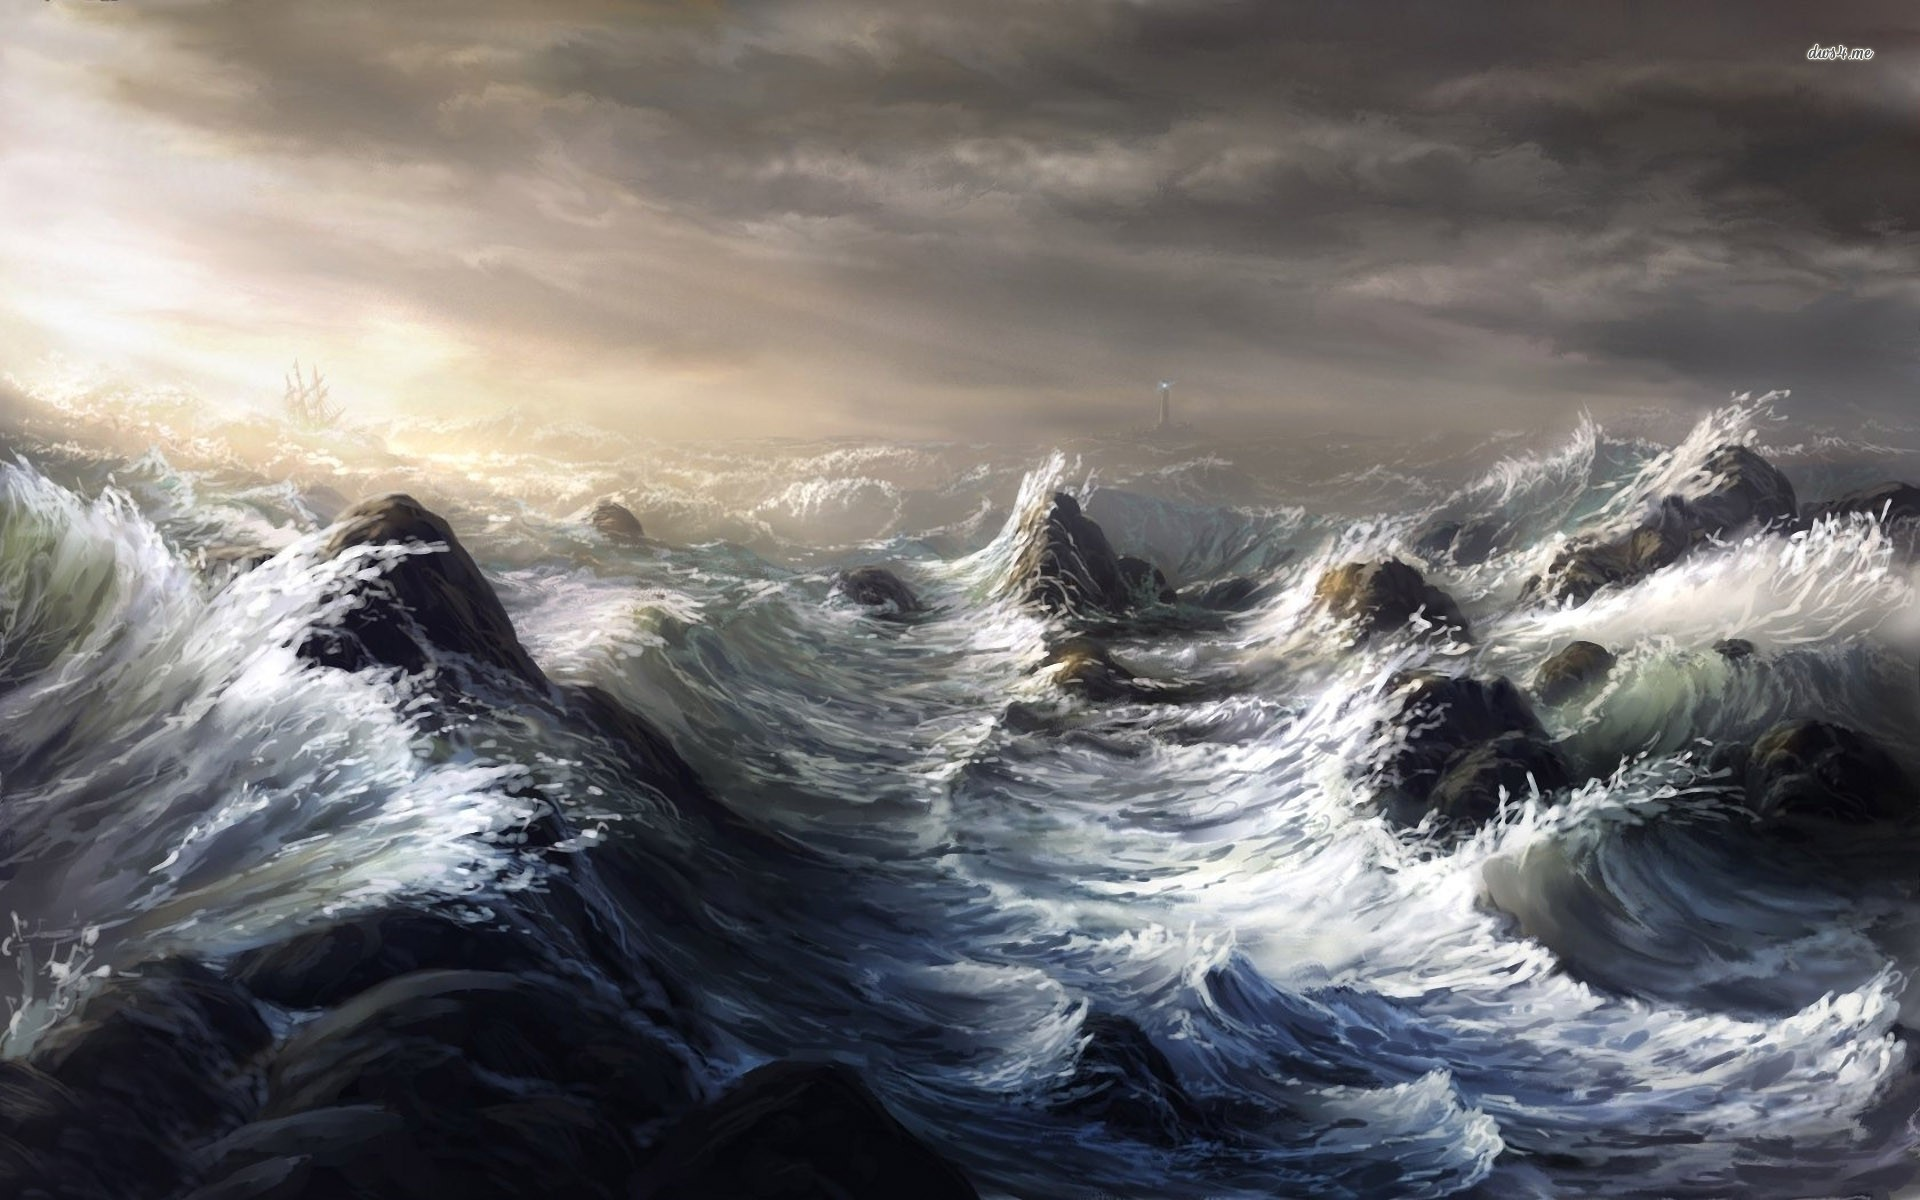 Ocean Storm Wallpapers - Full HD wallpaper search